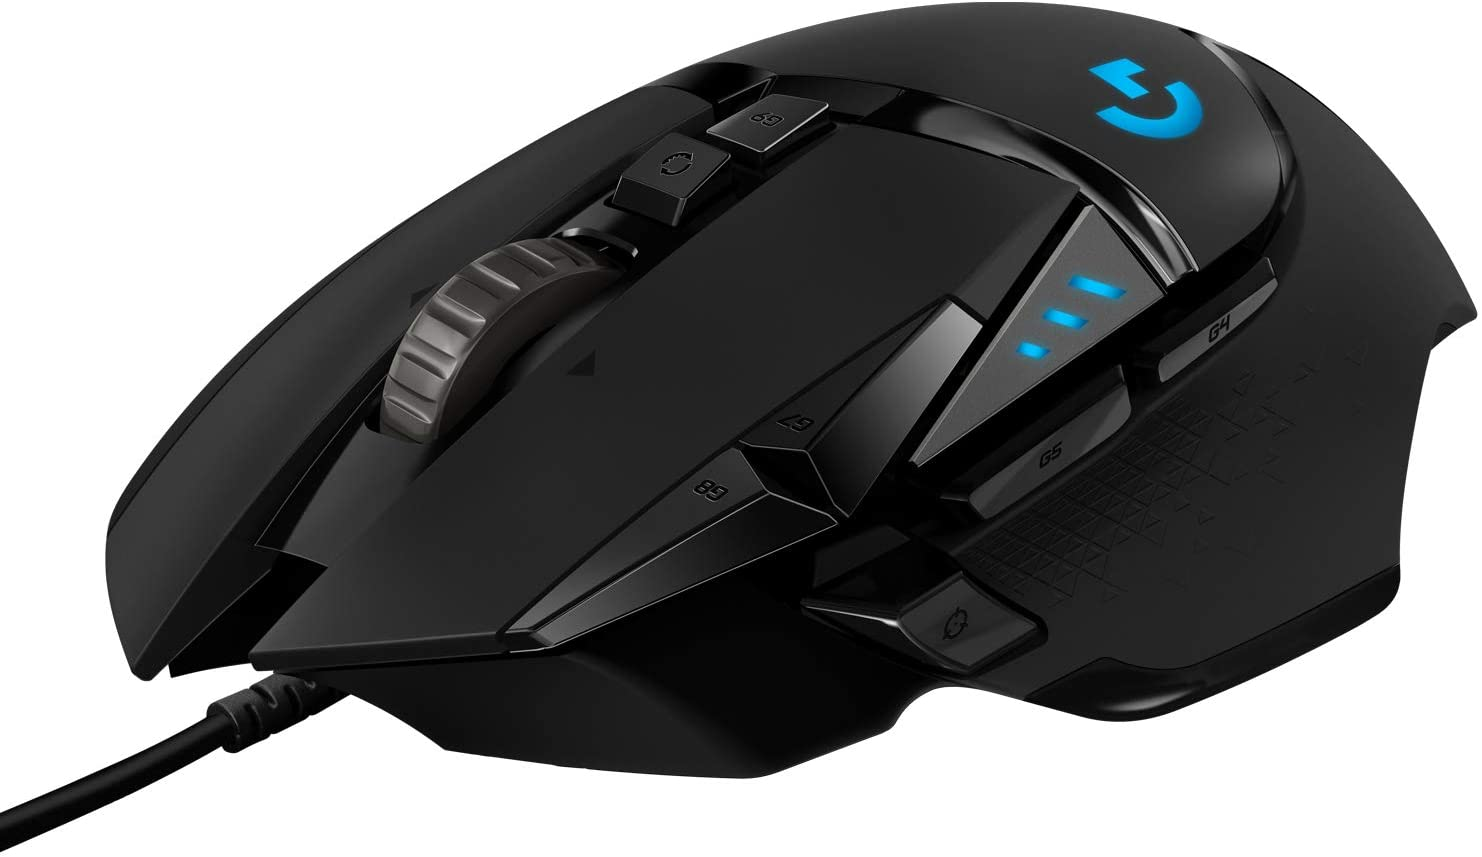 8 Best Gaming Mouse Under $100 – 2021 Buying Guide 2